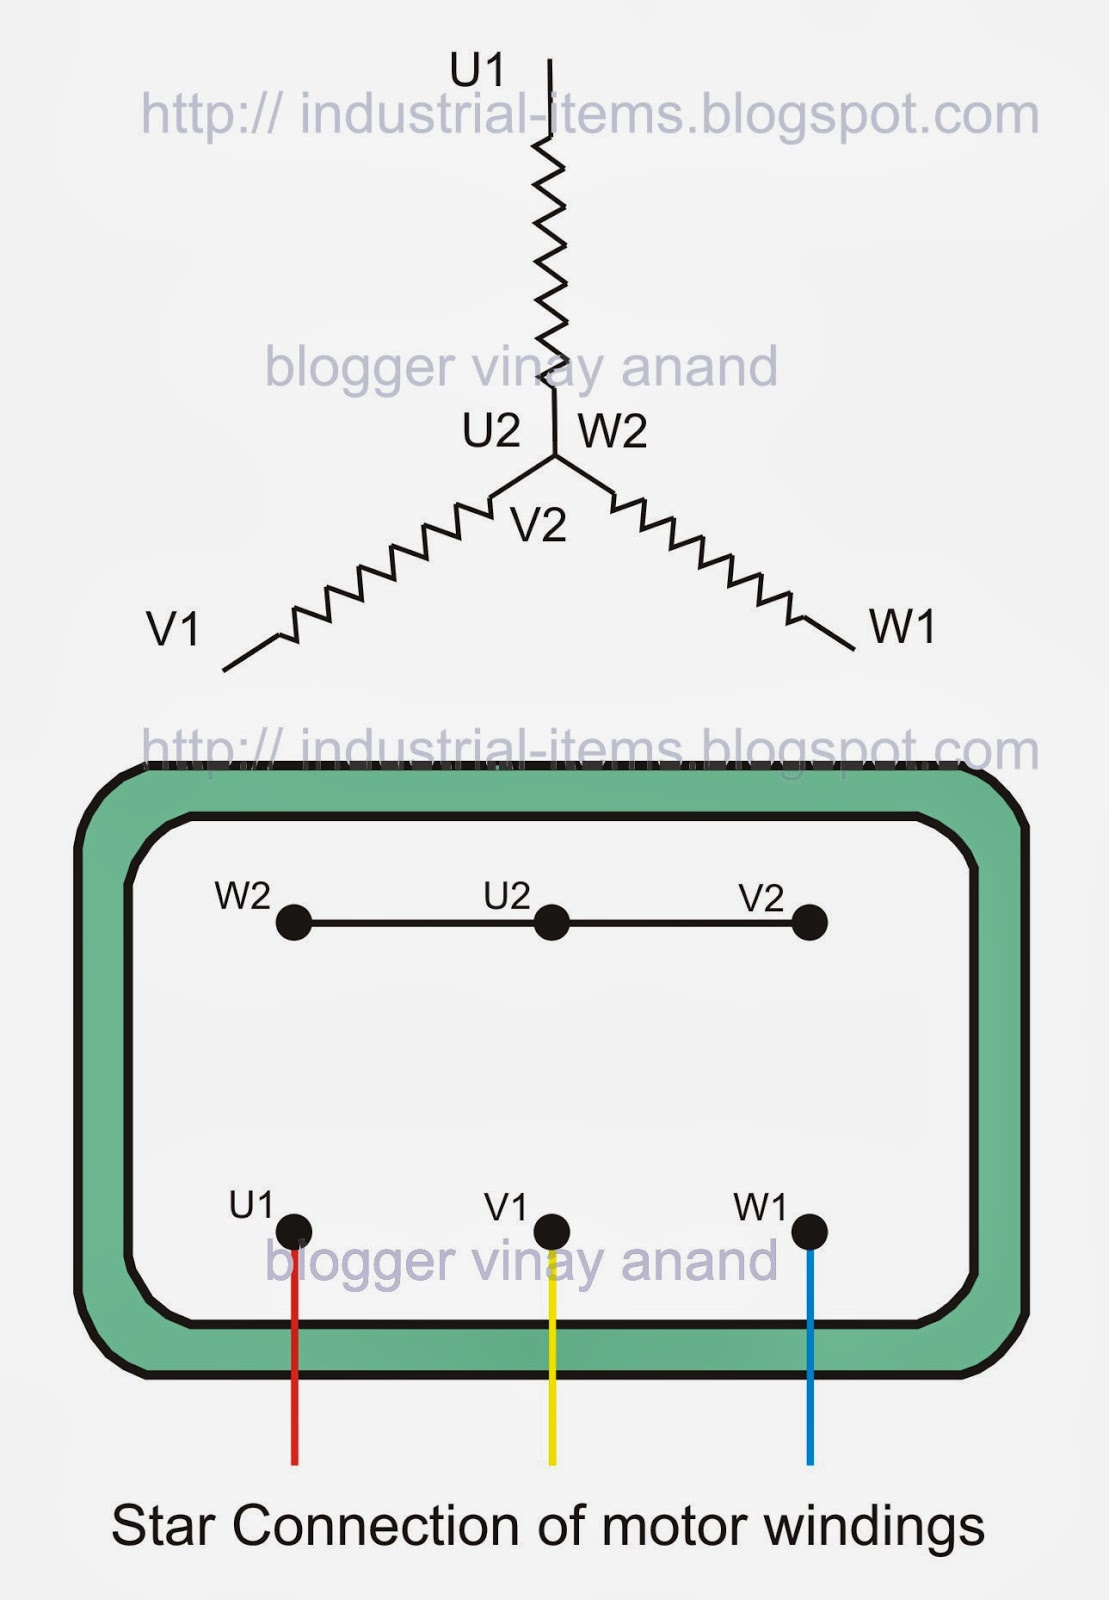 Star Delta Wiring Diagram Motor Of An Atom Element Gk Current Affairs Tutorials And Articles